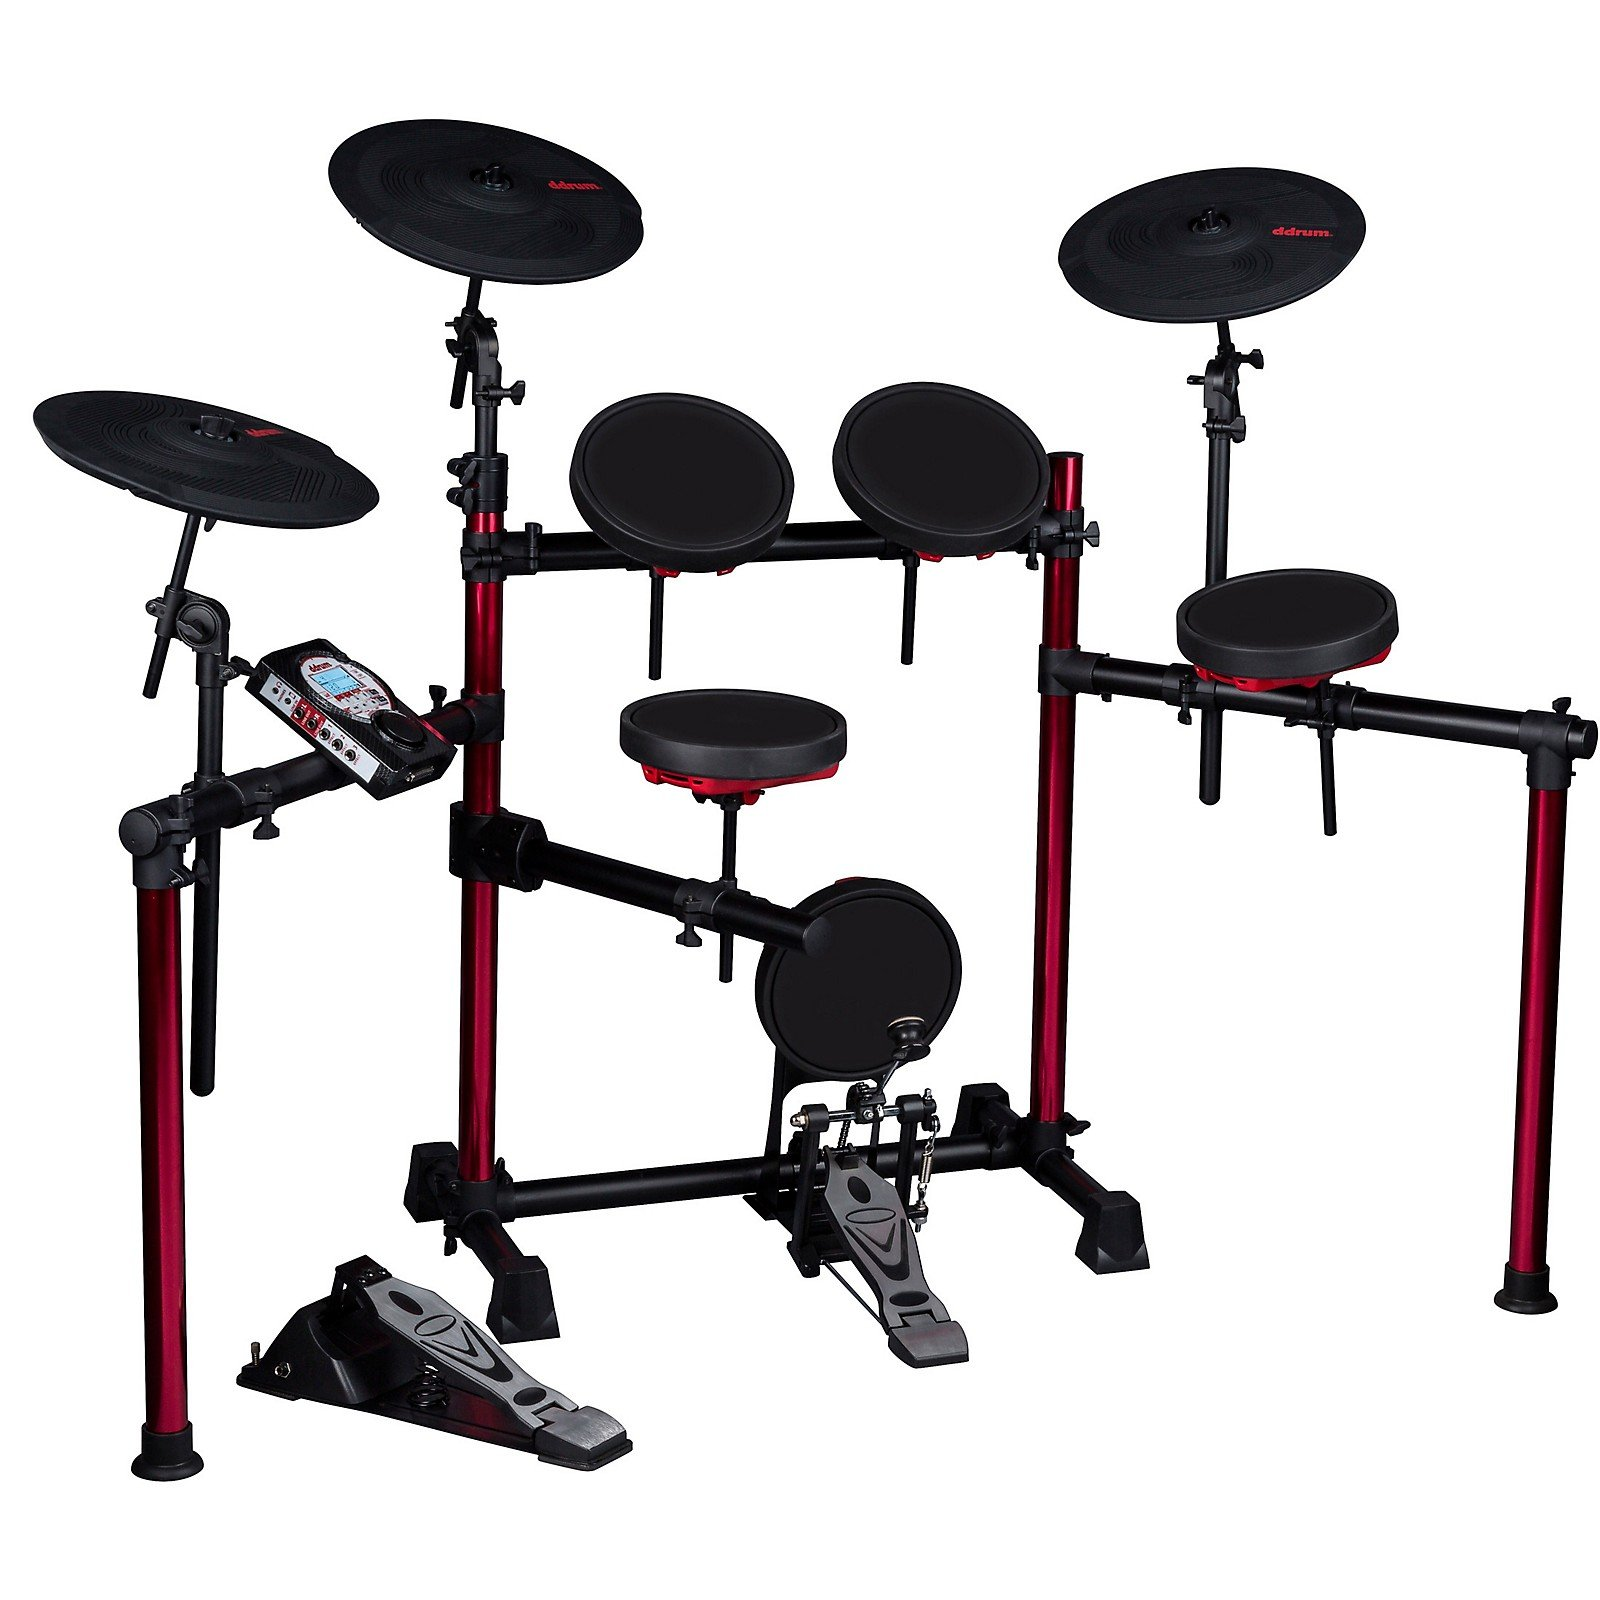 DDRUM DD BETA PRO Electronic Drumset